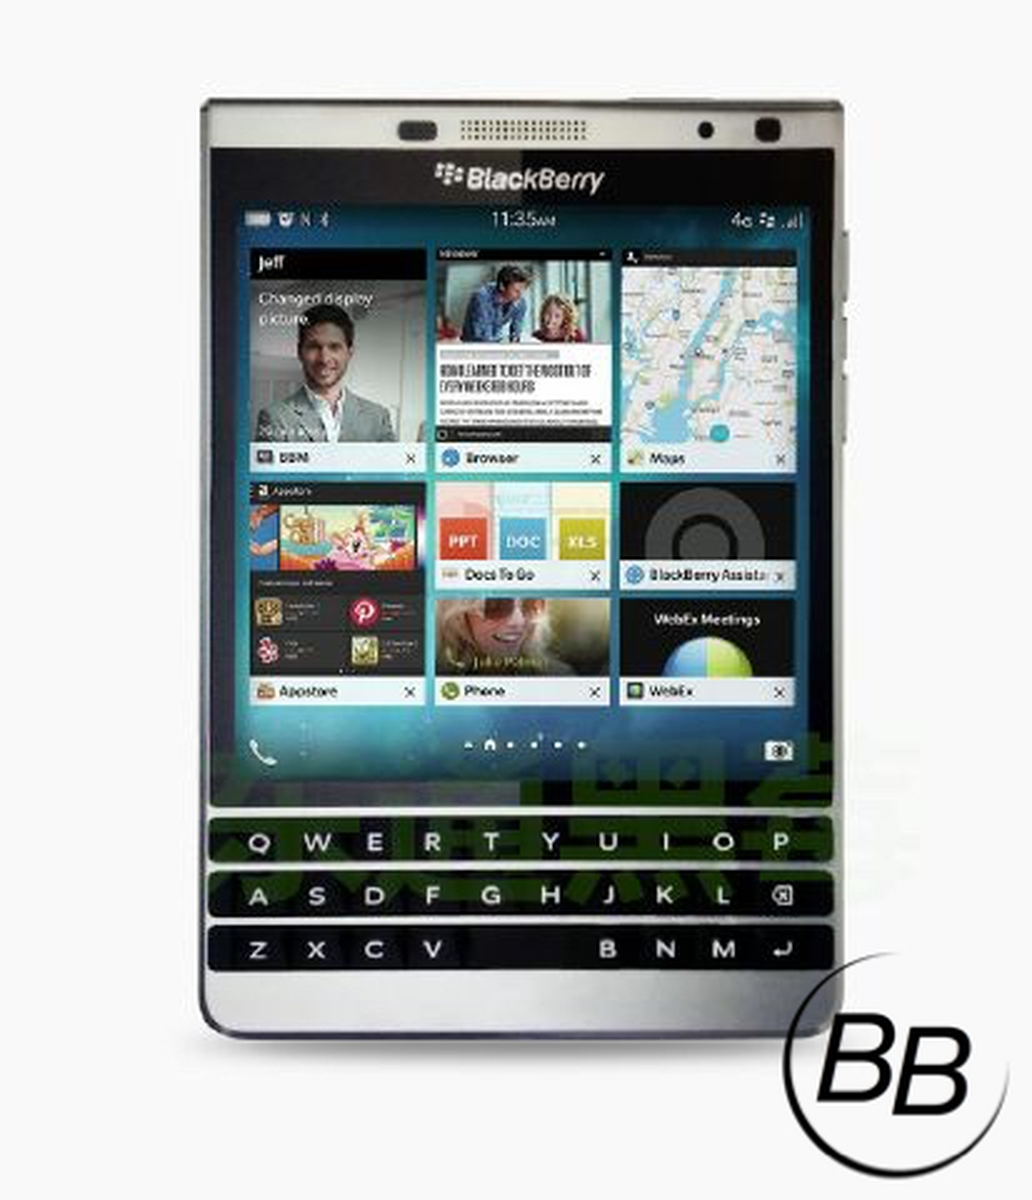 BlackBerry-Oslo-1